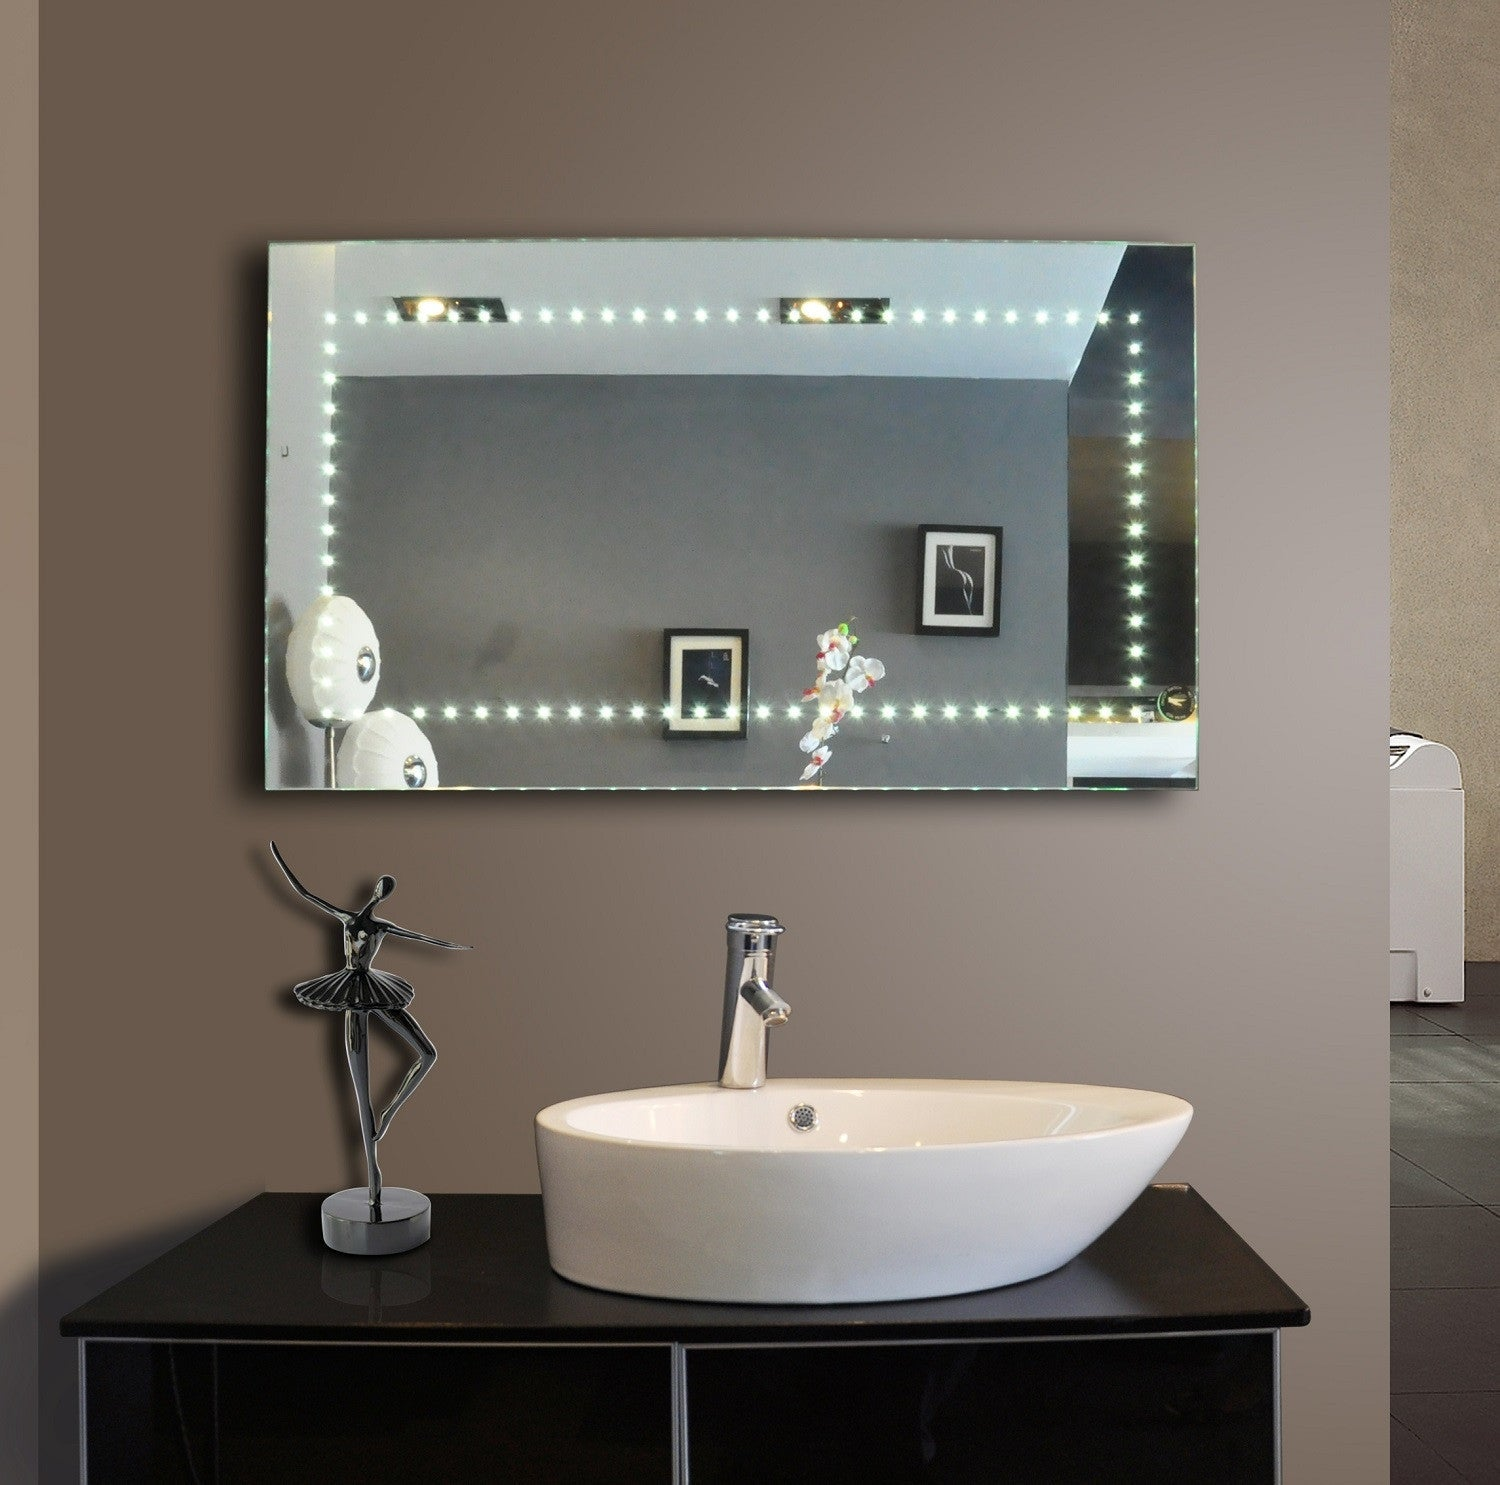 high quality Fog free mirror, Illuminated makeup mirror, best fog free mirror, affordable Illuminated makeup mirror